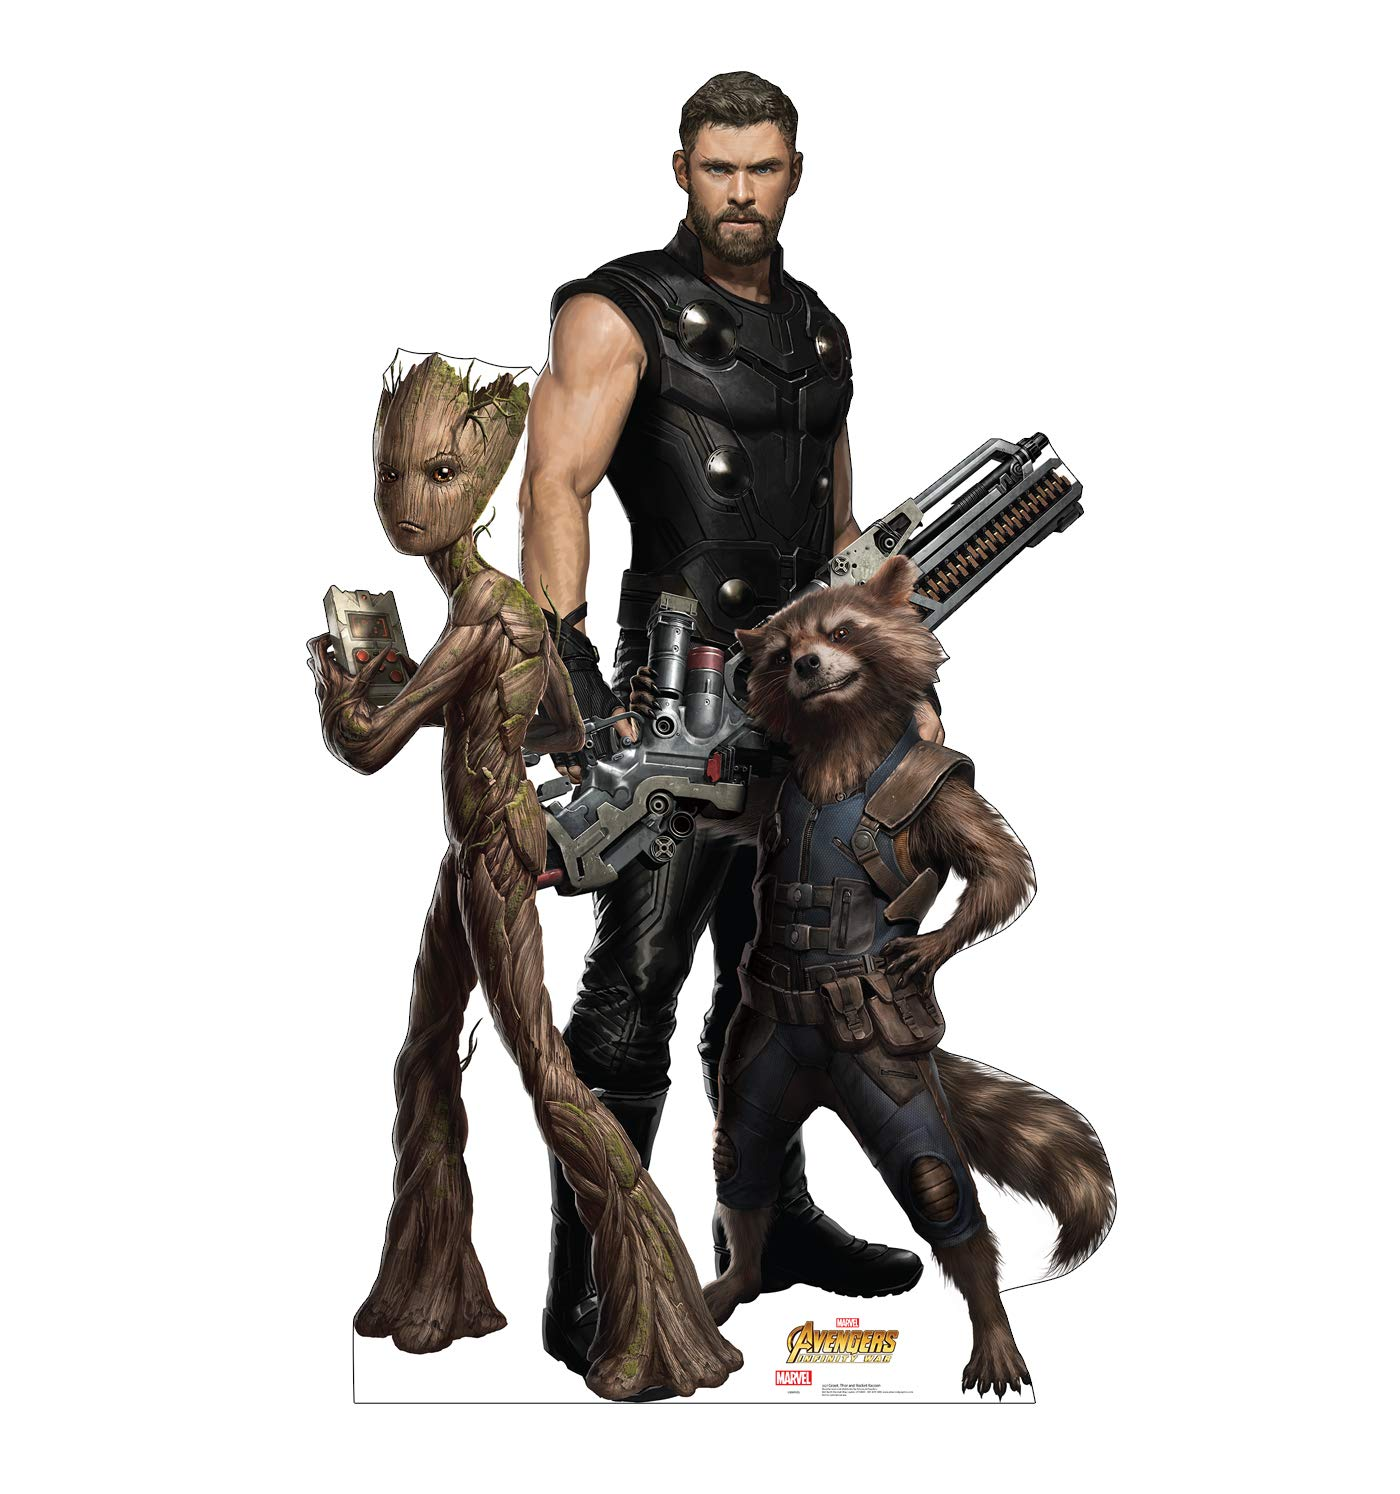 Advanced Graphics Groot, Thor & Rocket Raccoon Life Size Cardboard Cutout Standup - Marvel's Avengers: Infinity War (2018 Film)